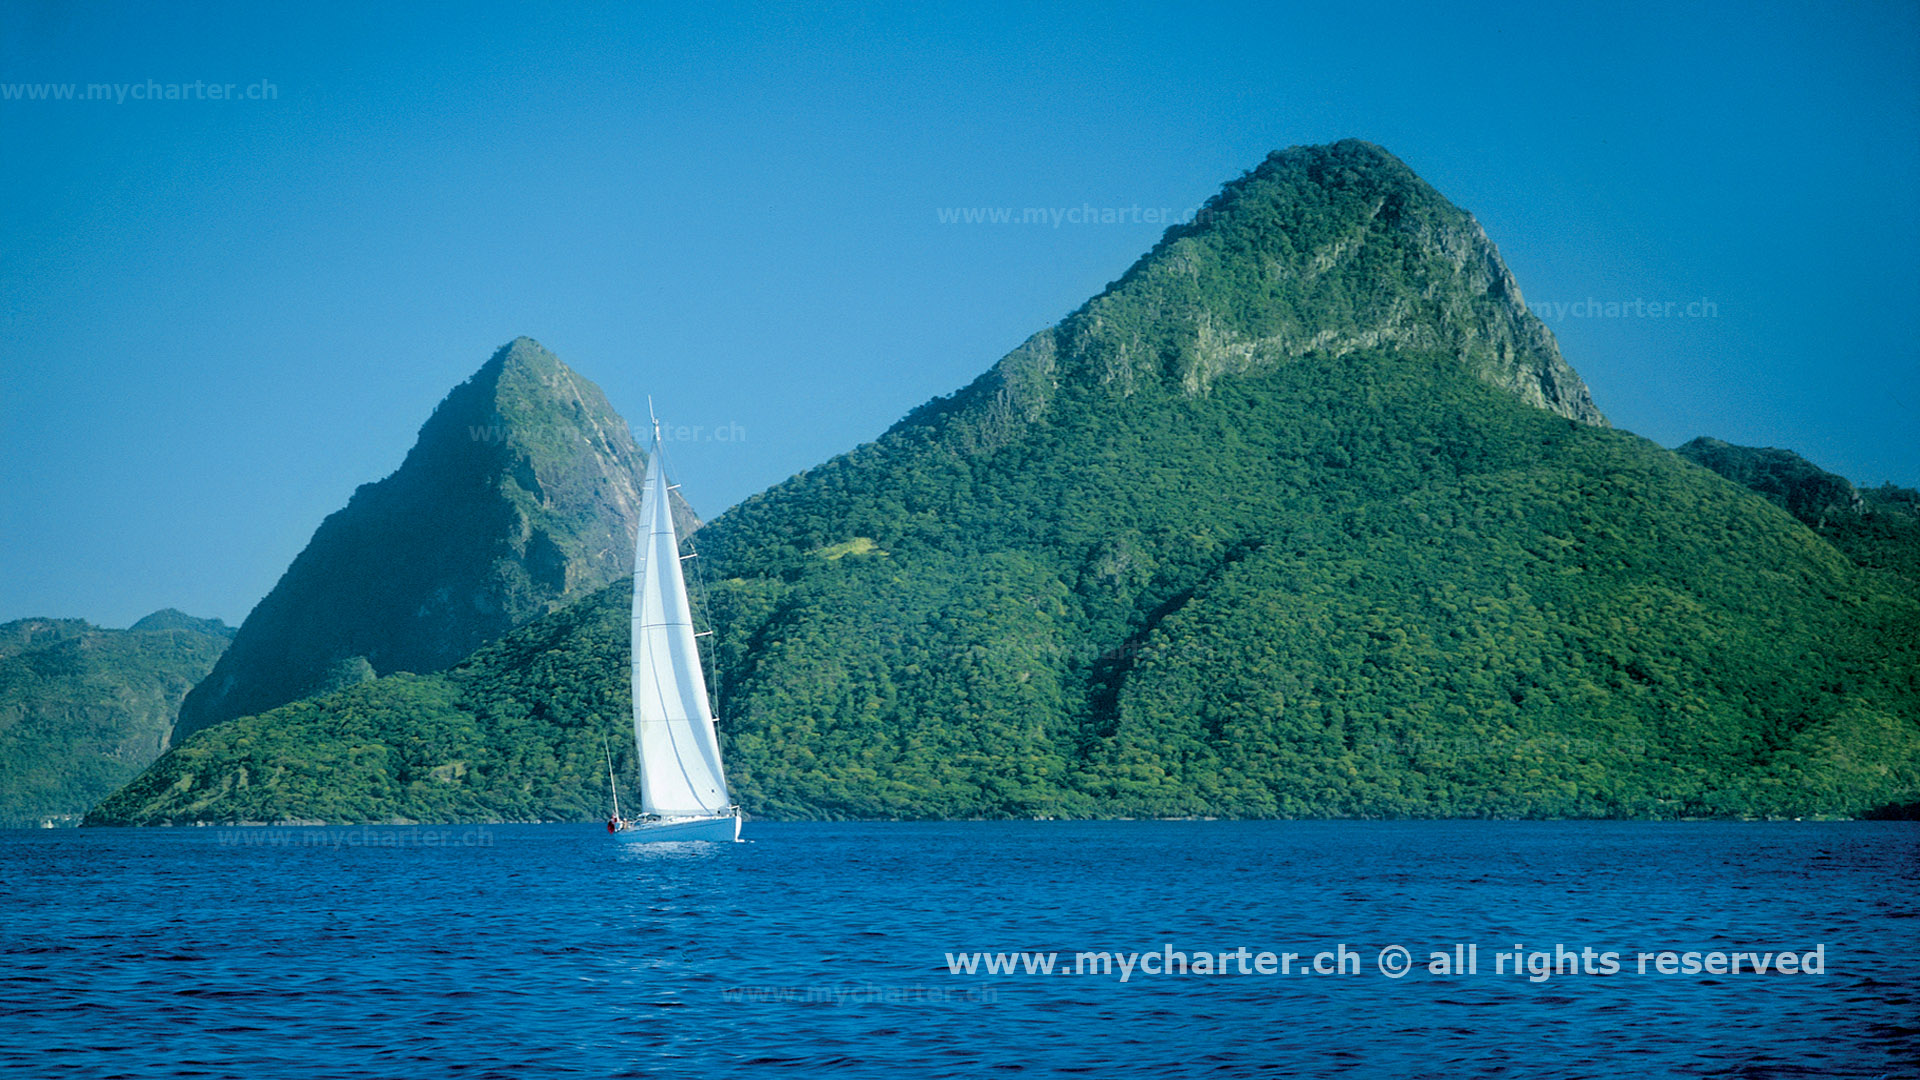 Yachtcharter ab Martinqiue - St Lucia